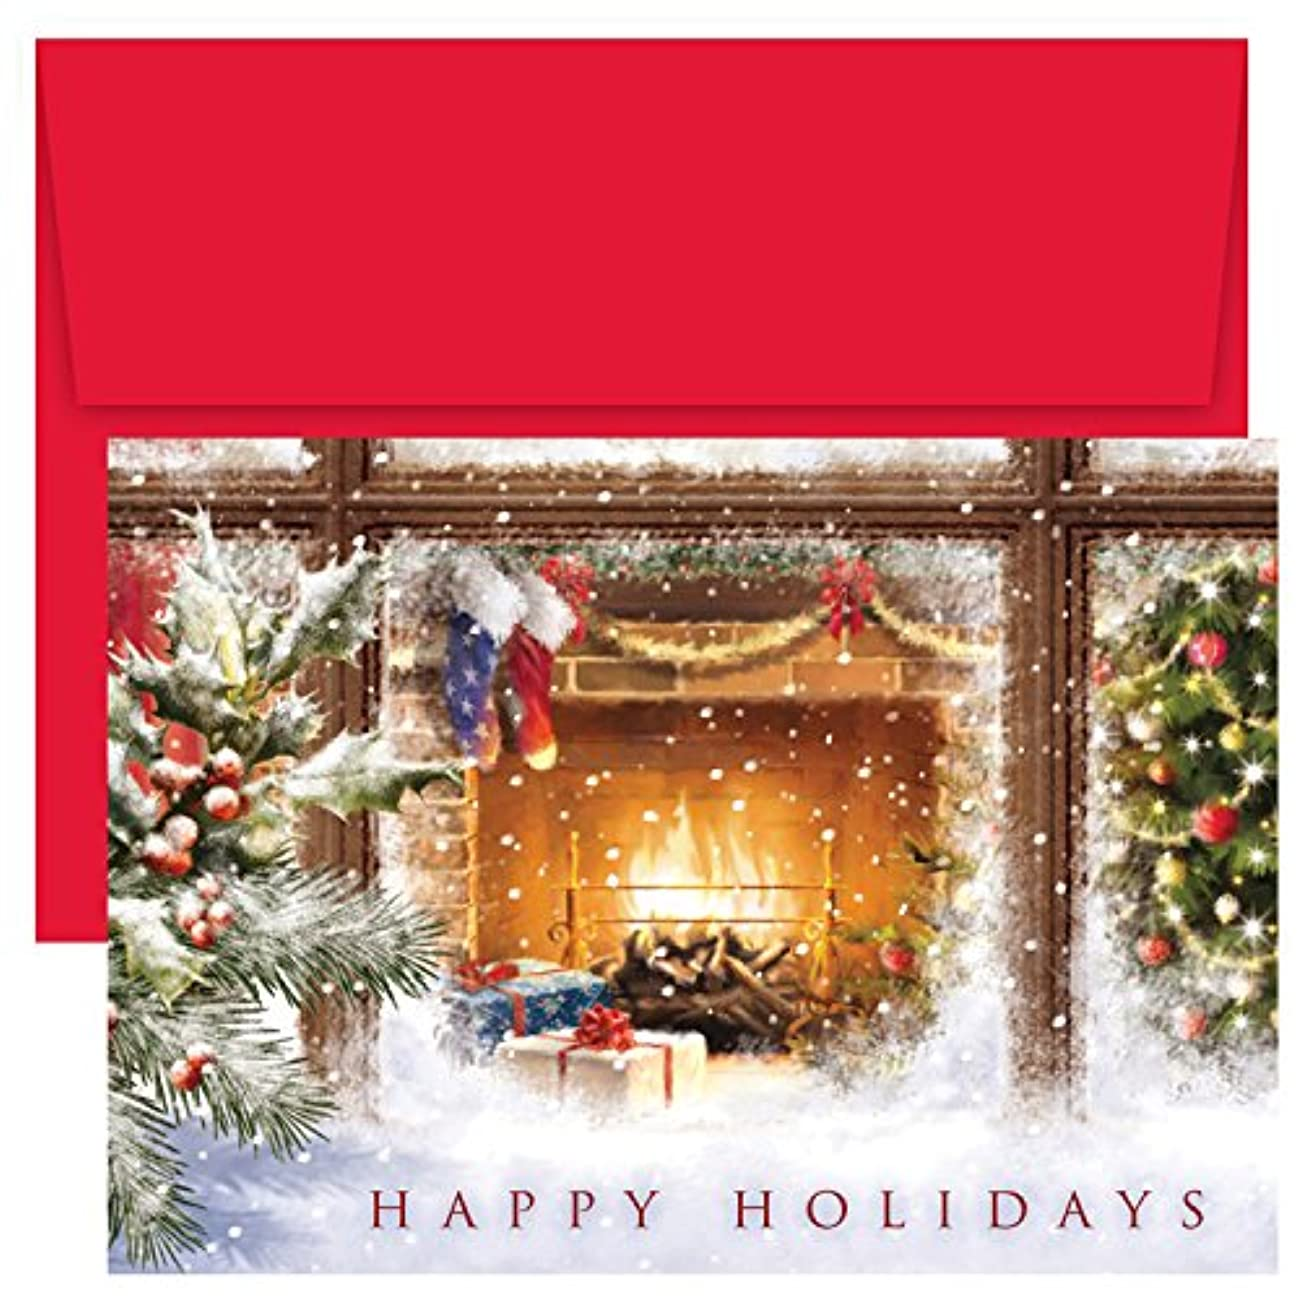 Masterpiece Studios Holiday Collection 18 Cards / 18 Envelopes, Cozy Fireplace